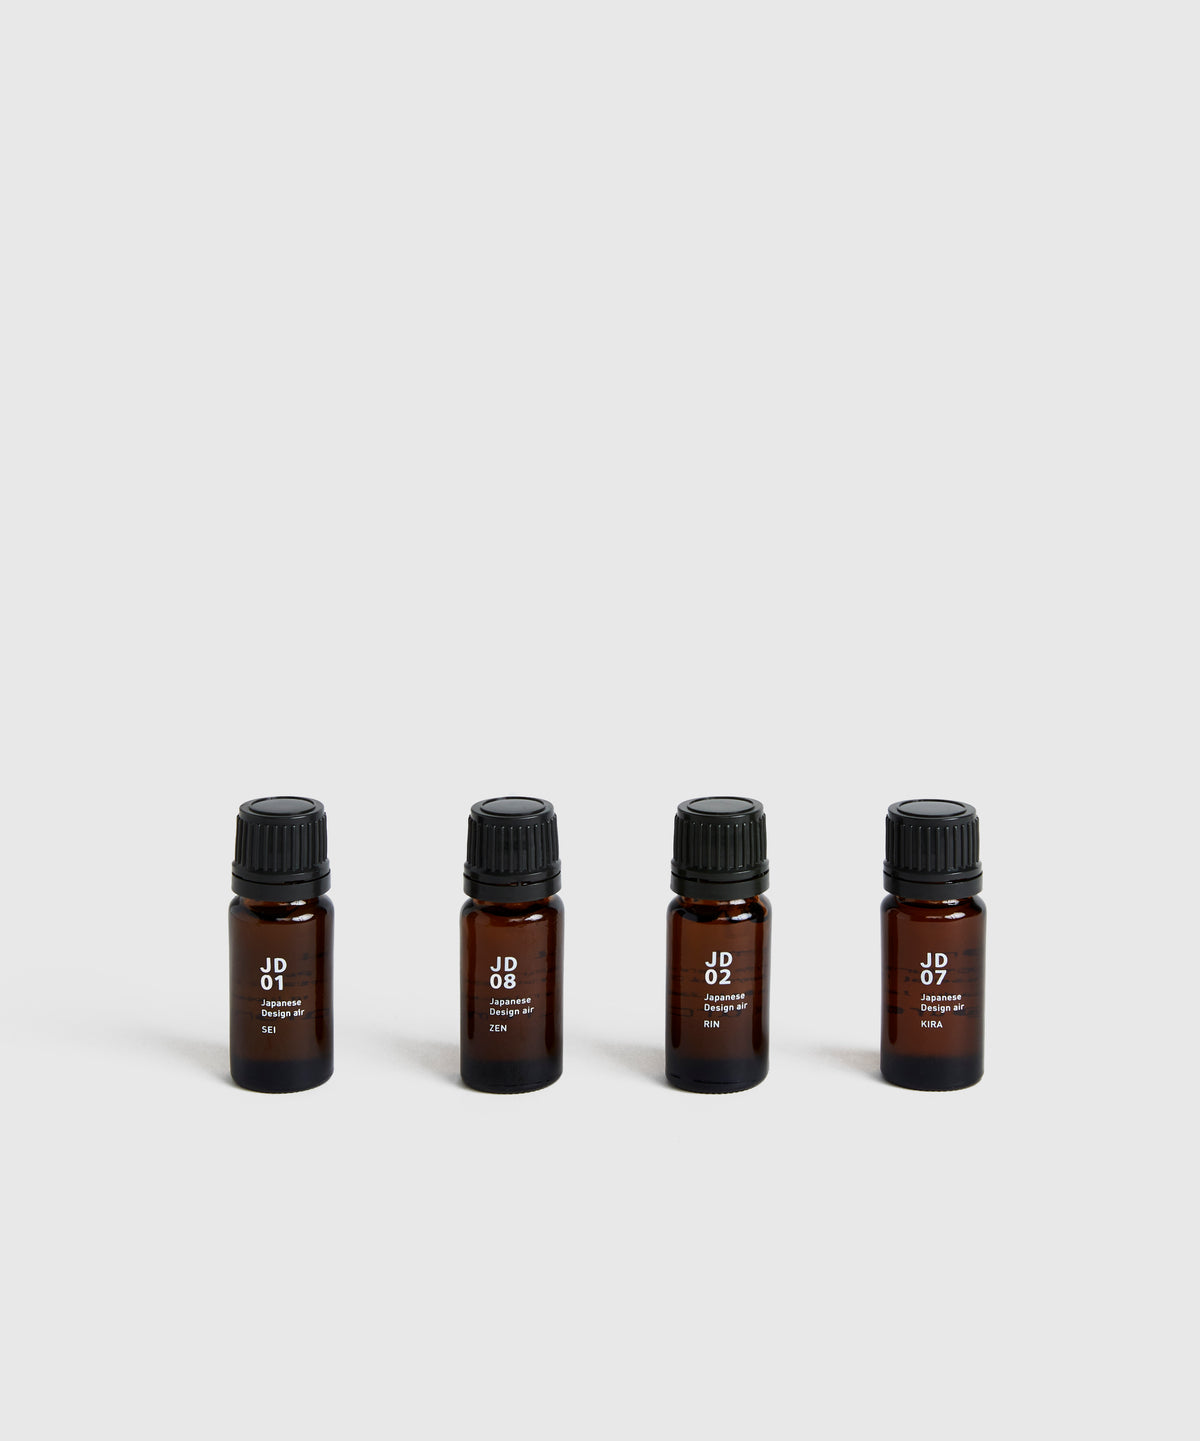 100% Natural Essential Oil – Inspired by Japan